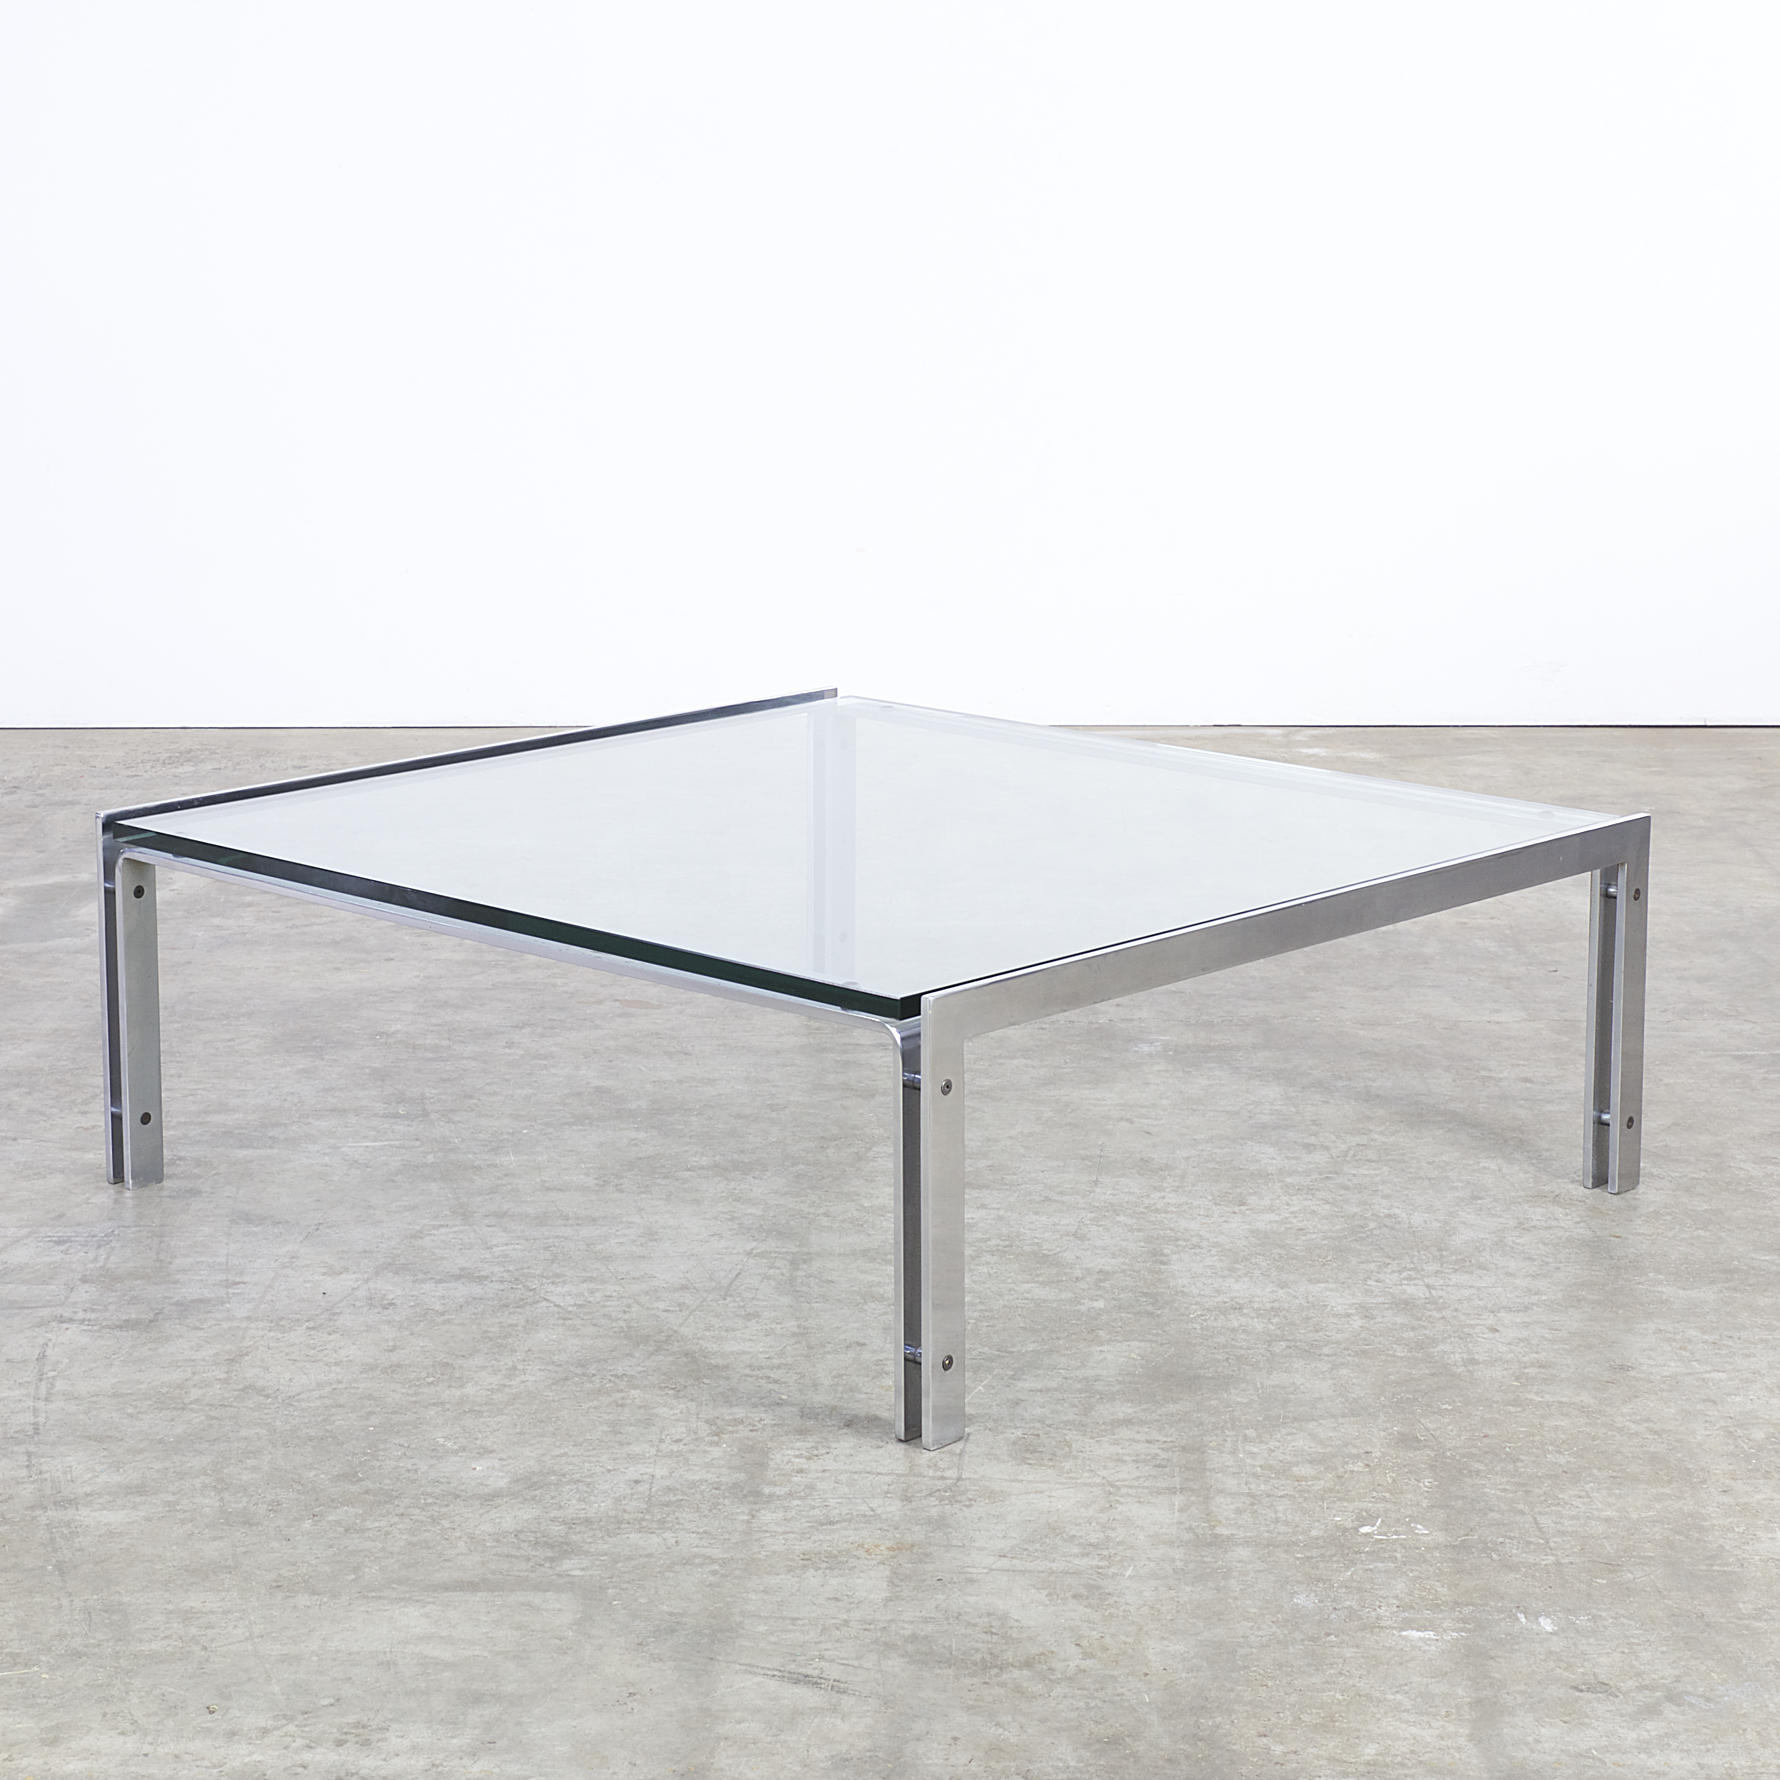 70s Glass And Chrome M1 Coffee Table For Metaform Barbmama